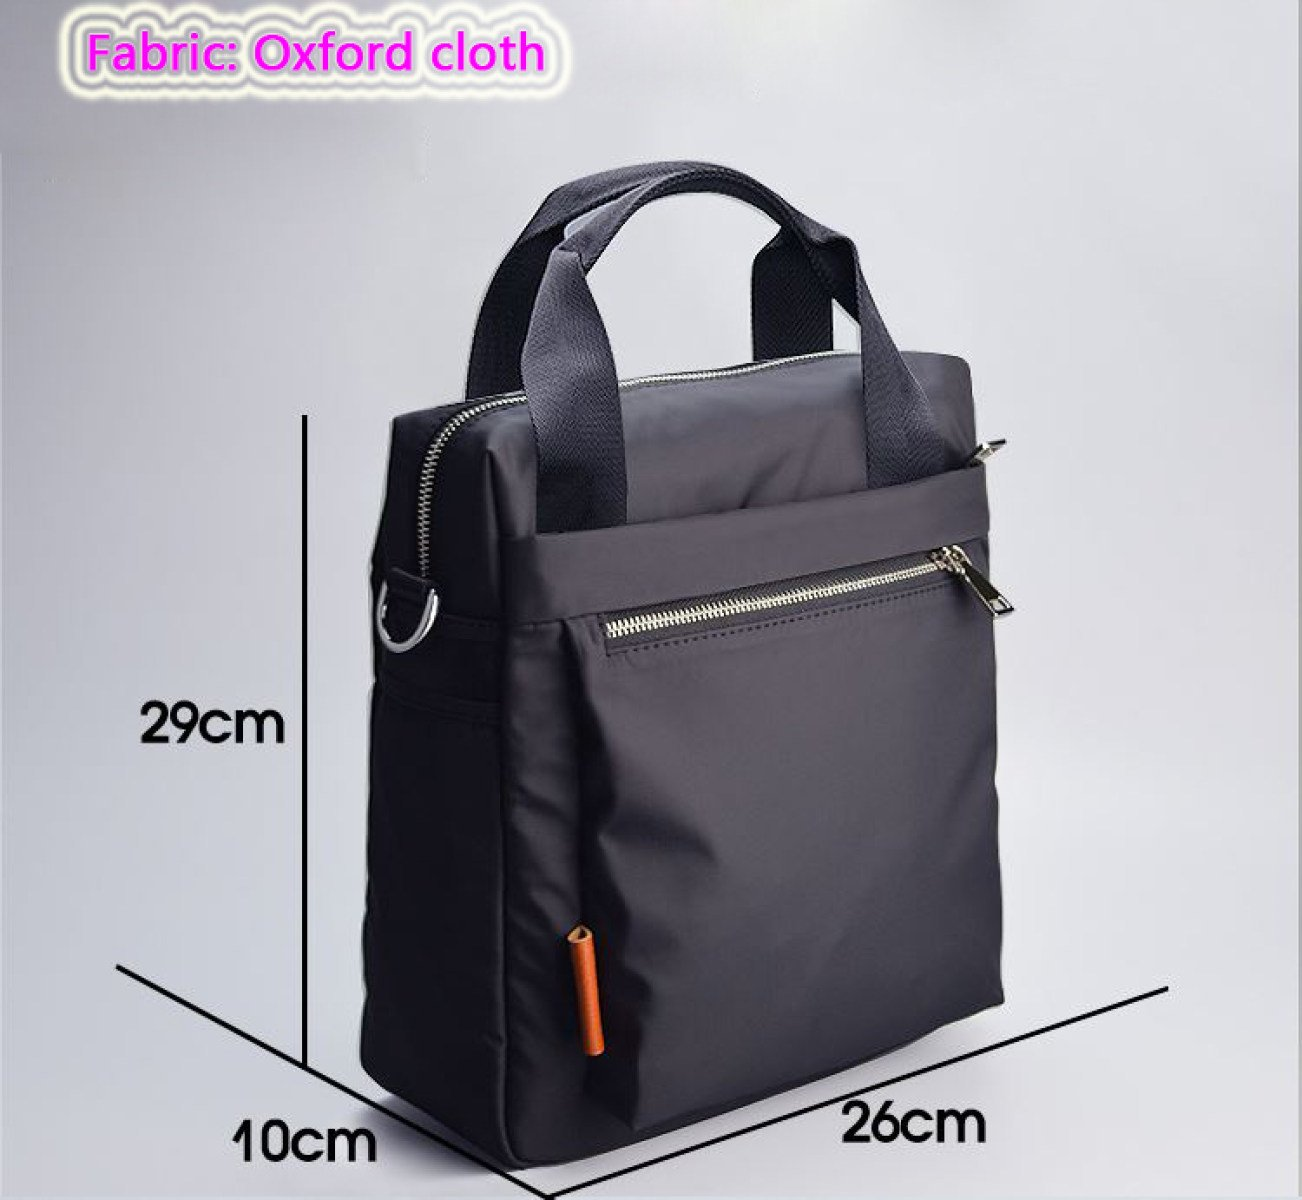 SJLN Men 8 Inch Waterproof Notebook Computer Bag Portable Shoulder Diagonal Package Briefcase Oxford Spinning Simple Retro Business English Bag,Black-OneSize by SJLN (Image #4)